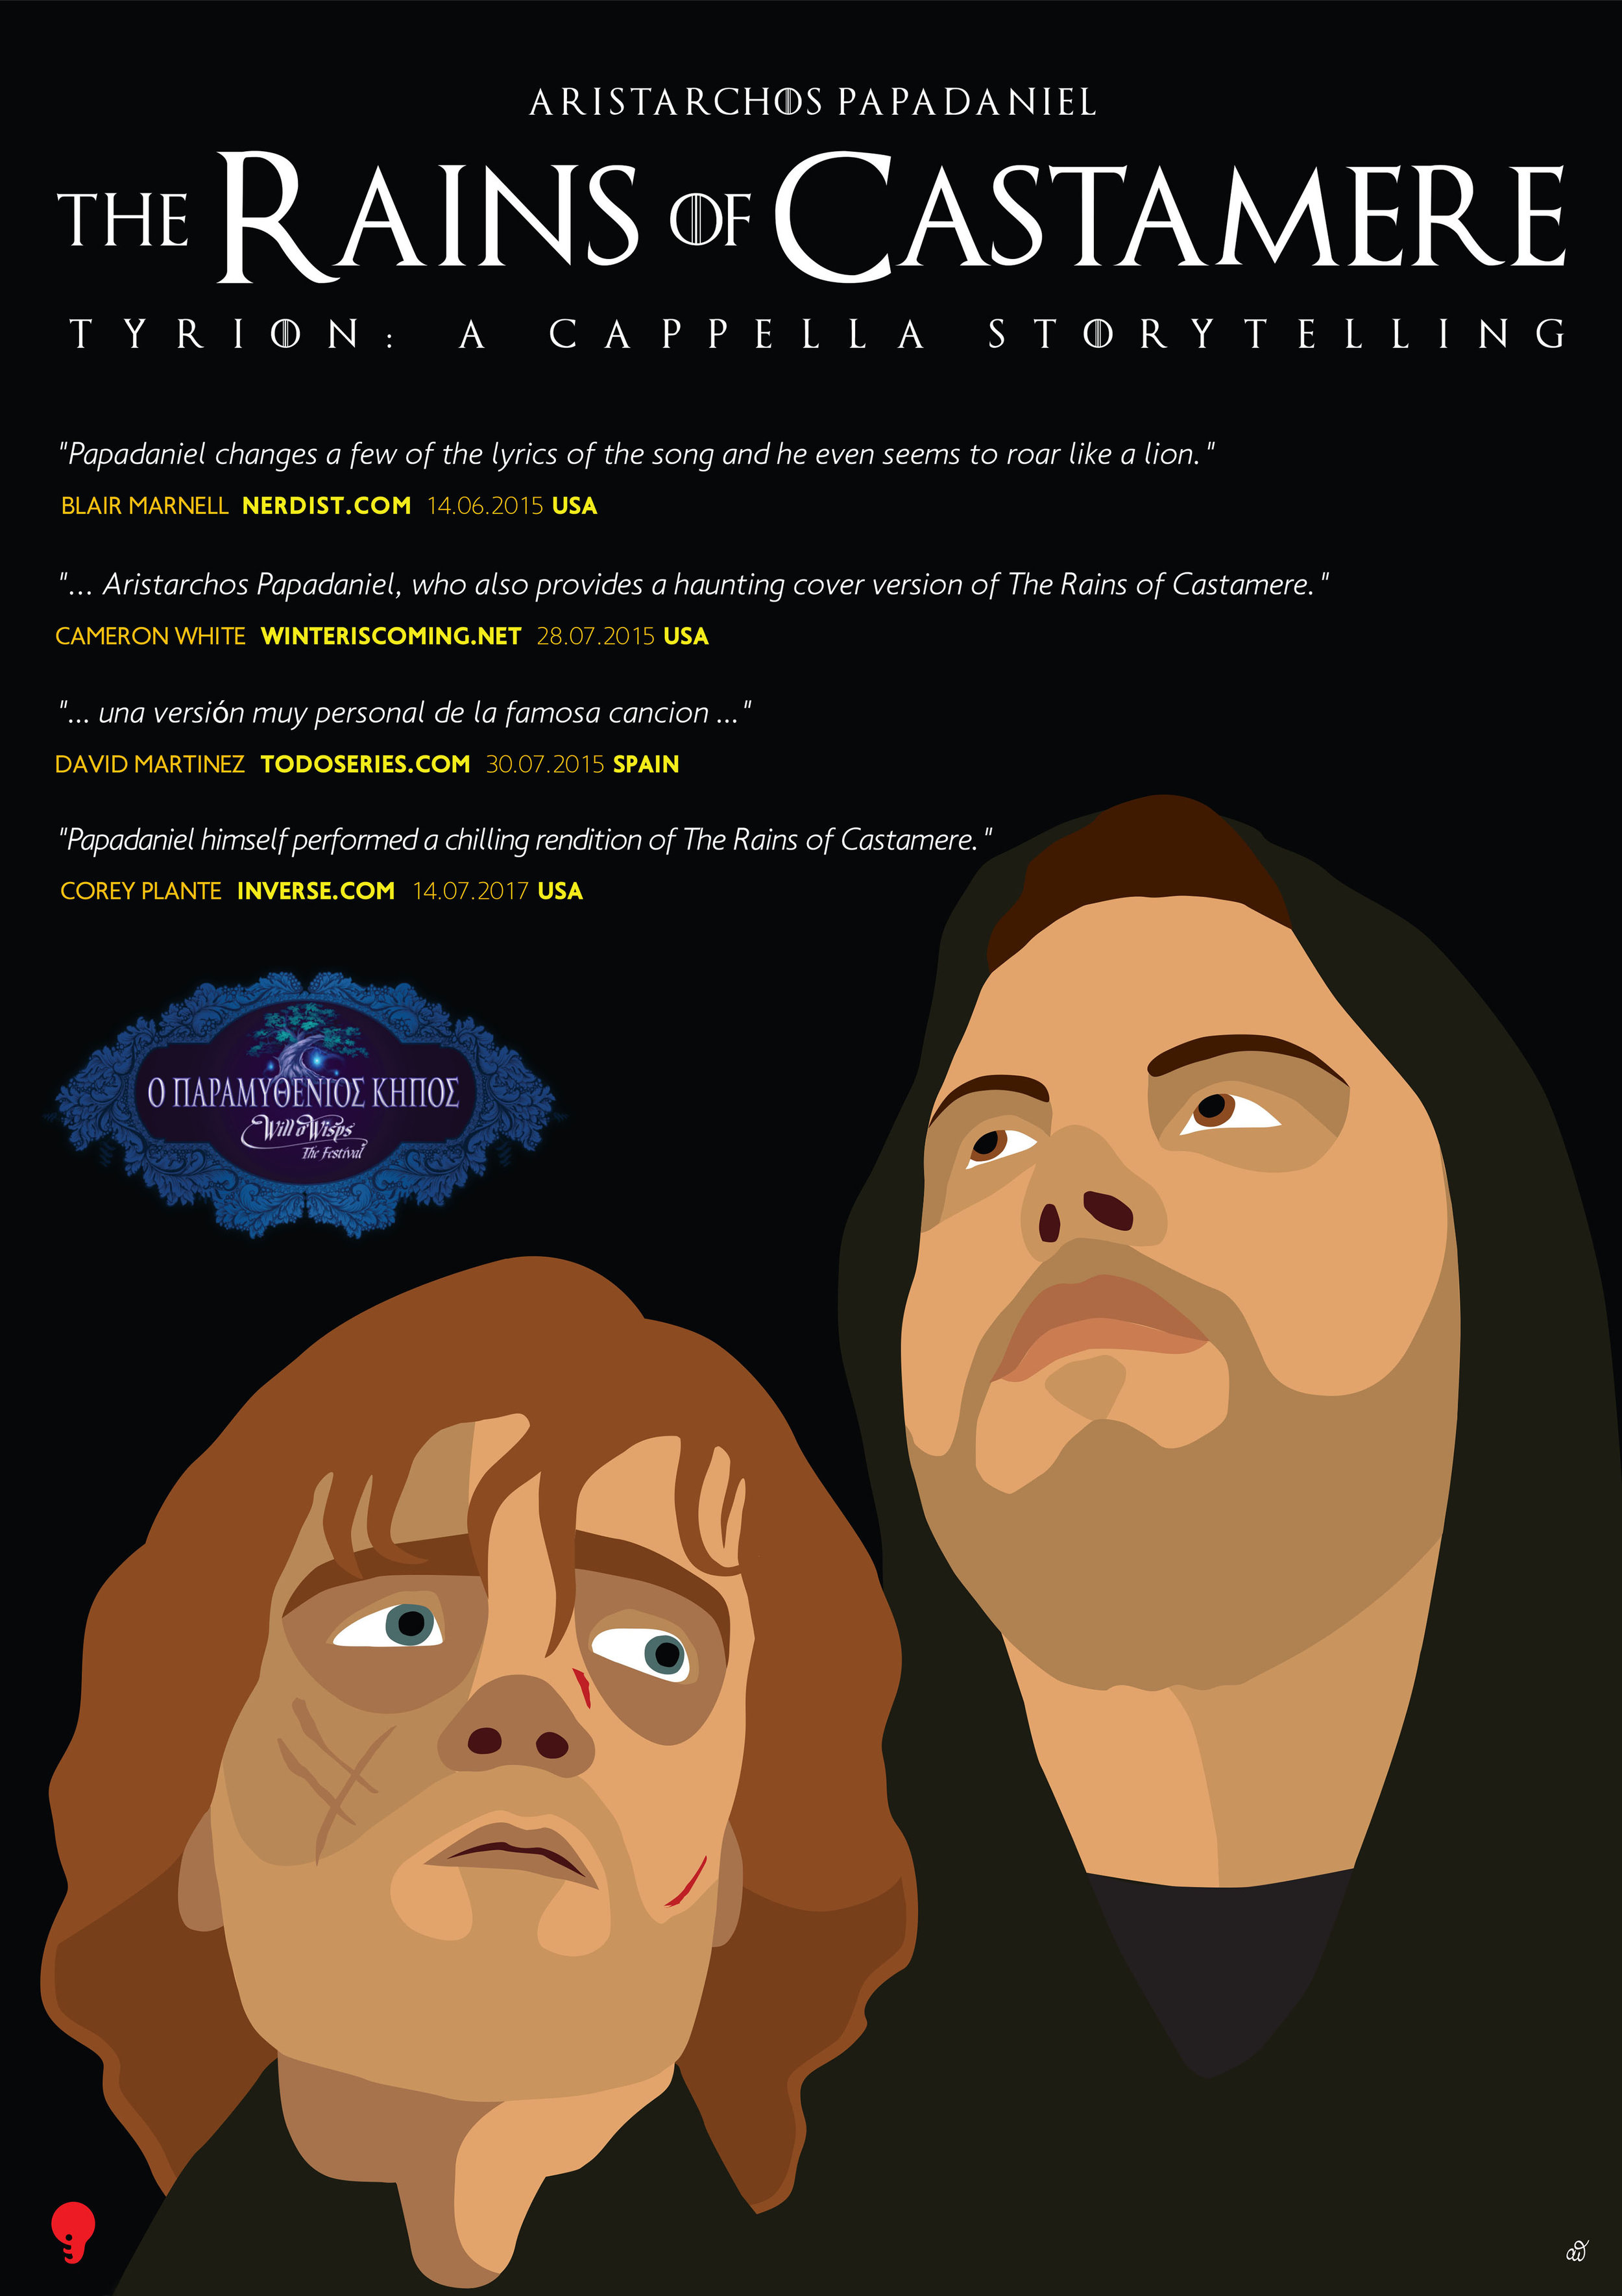 TYRION_A_CAPPELLA_STORYTELLING_WILLoWISPS_Poster.jpg